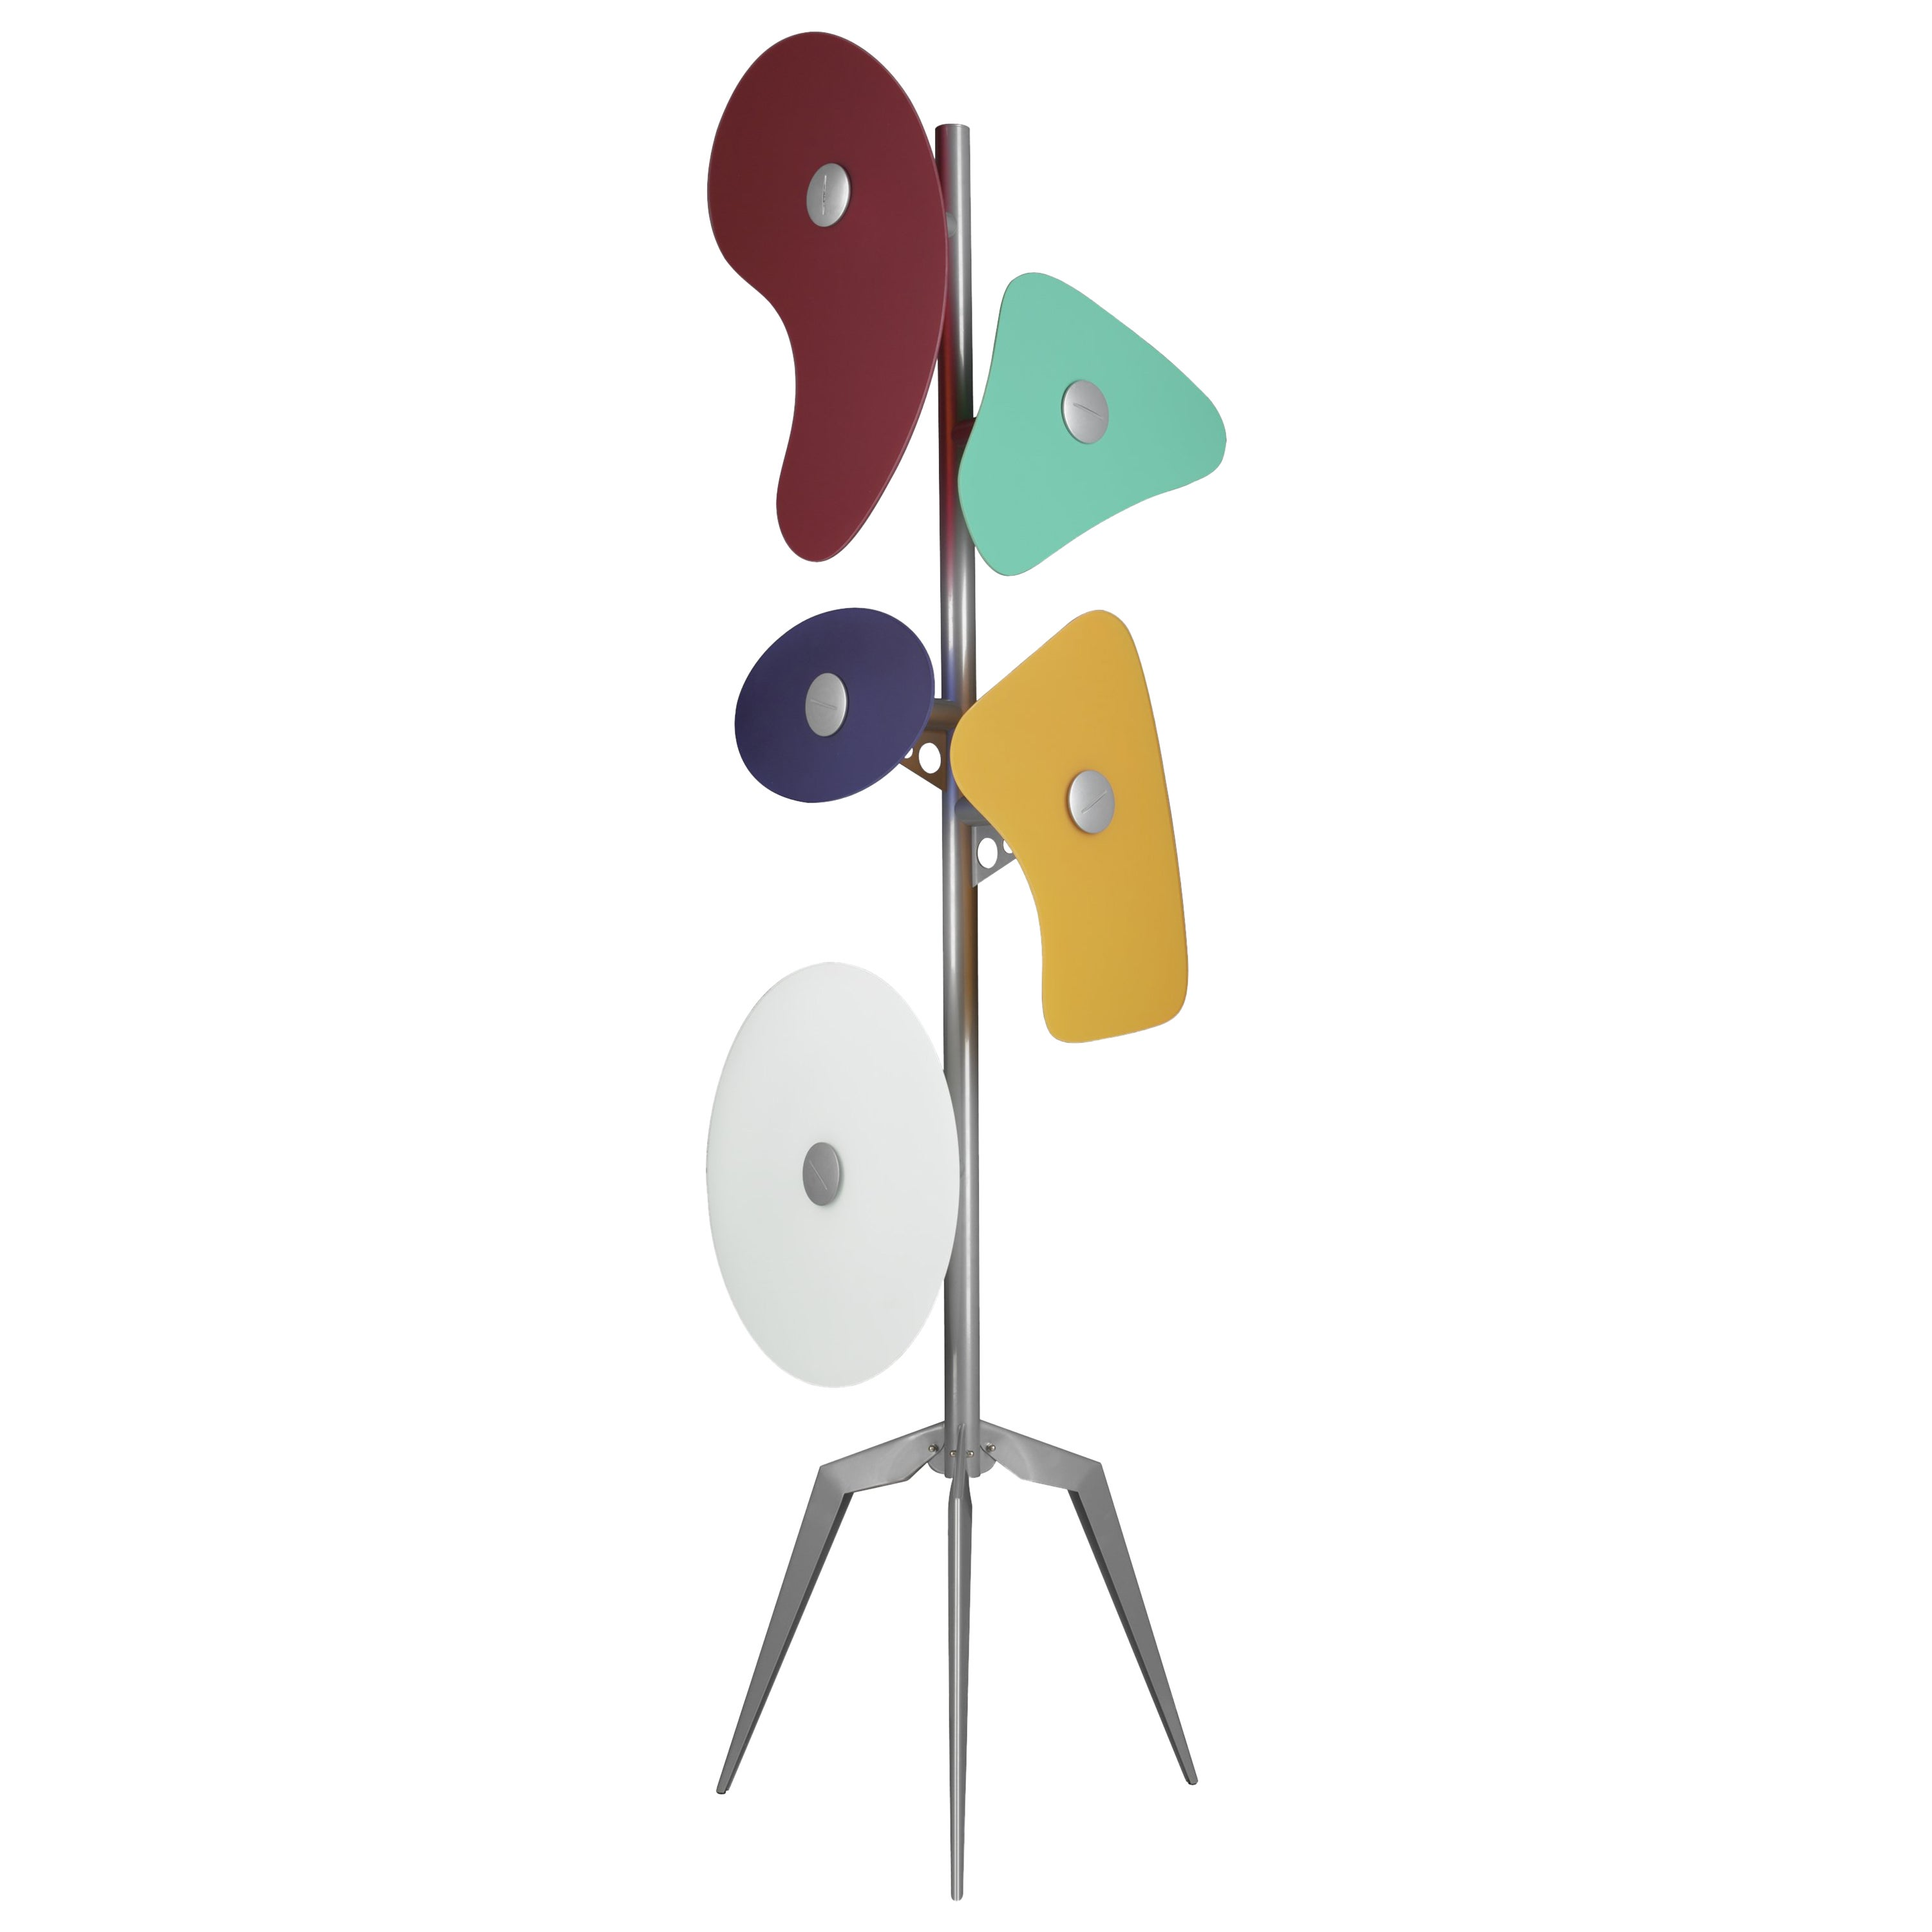 Foscarini Orbital Floor Lamp in Multicolors by Ferruccio Laviani